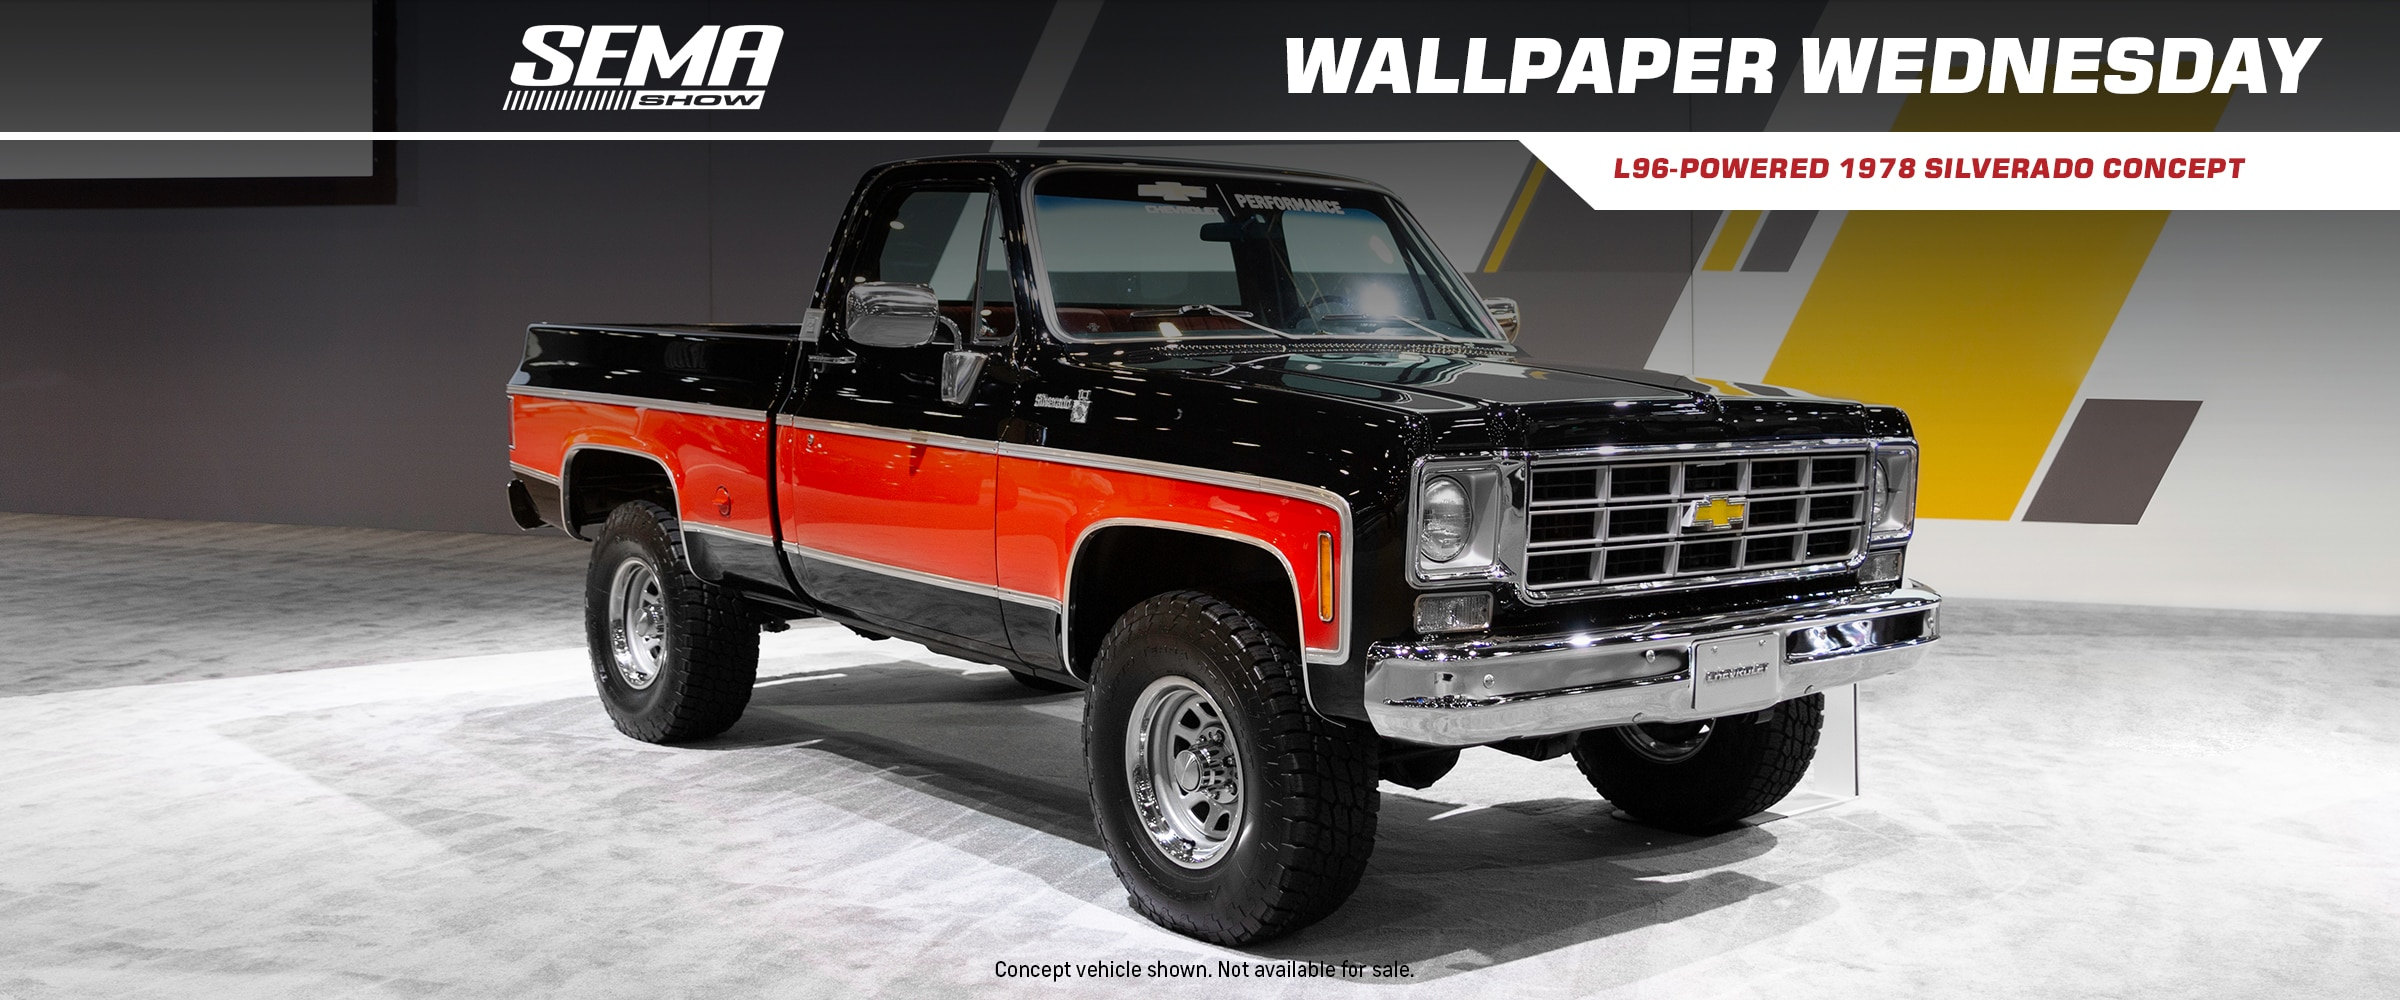 Vehicles, News, Parts, Events, Chevrolet Performance, Chevy, Chevrolet, Chevy Trucks, SEMA, SEMA Show, Chevy SEMA, Silverado, 1978 Silverado, Chevy Silverado, 1978 Chevy Silverado, 1978 Silverado Concept L96, Wallpaper, Wallpaper Wednesday, Downloads